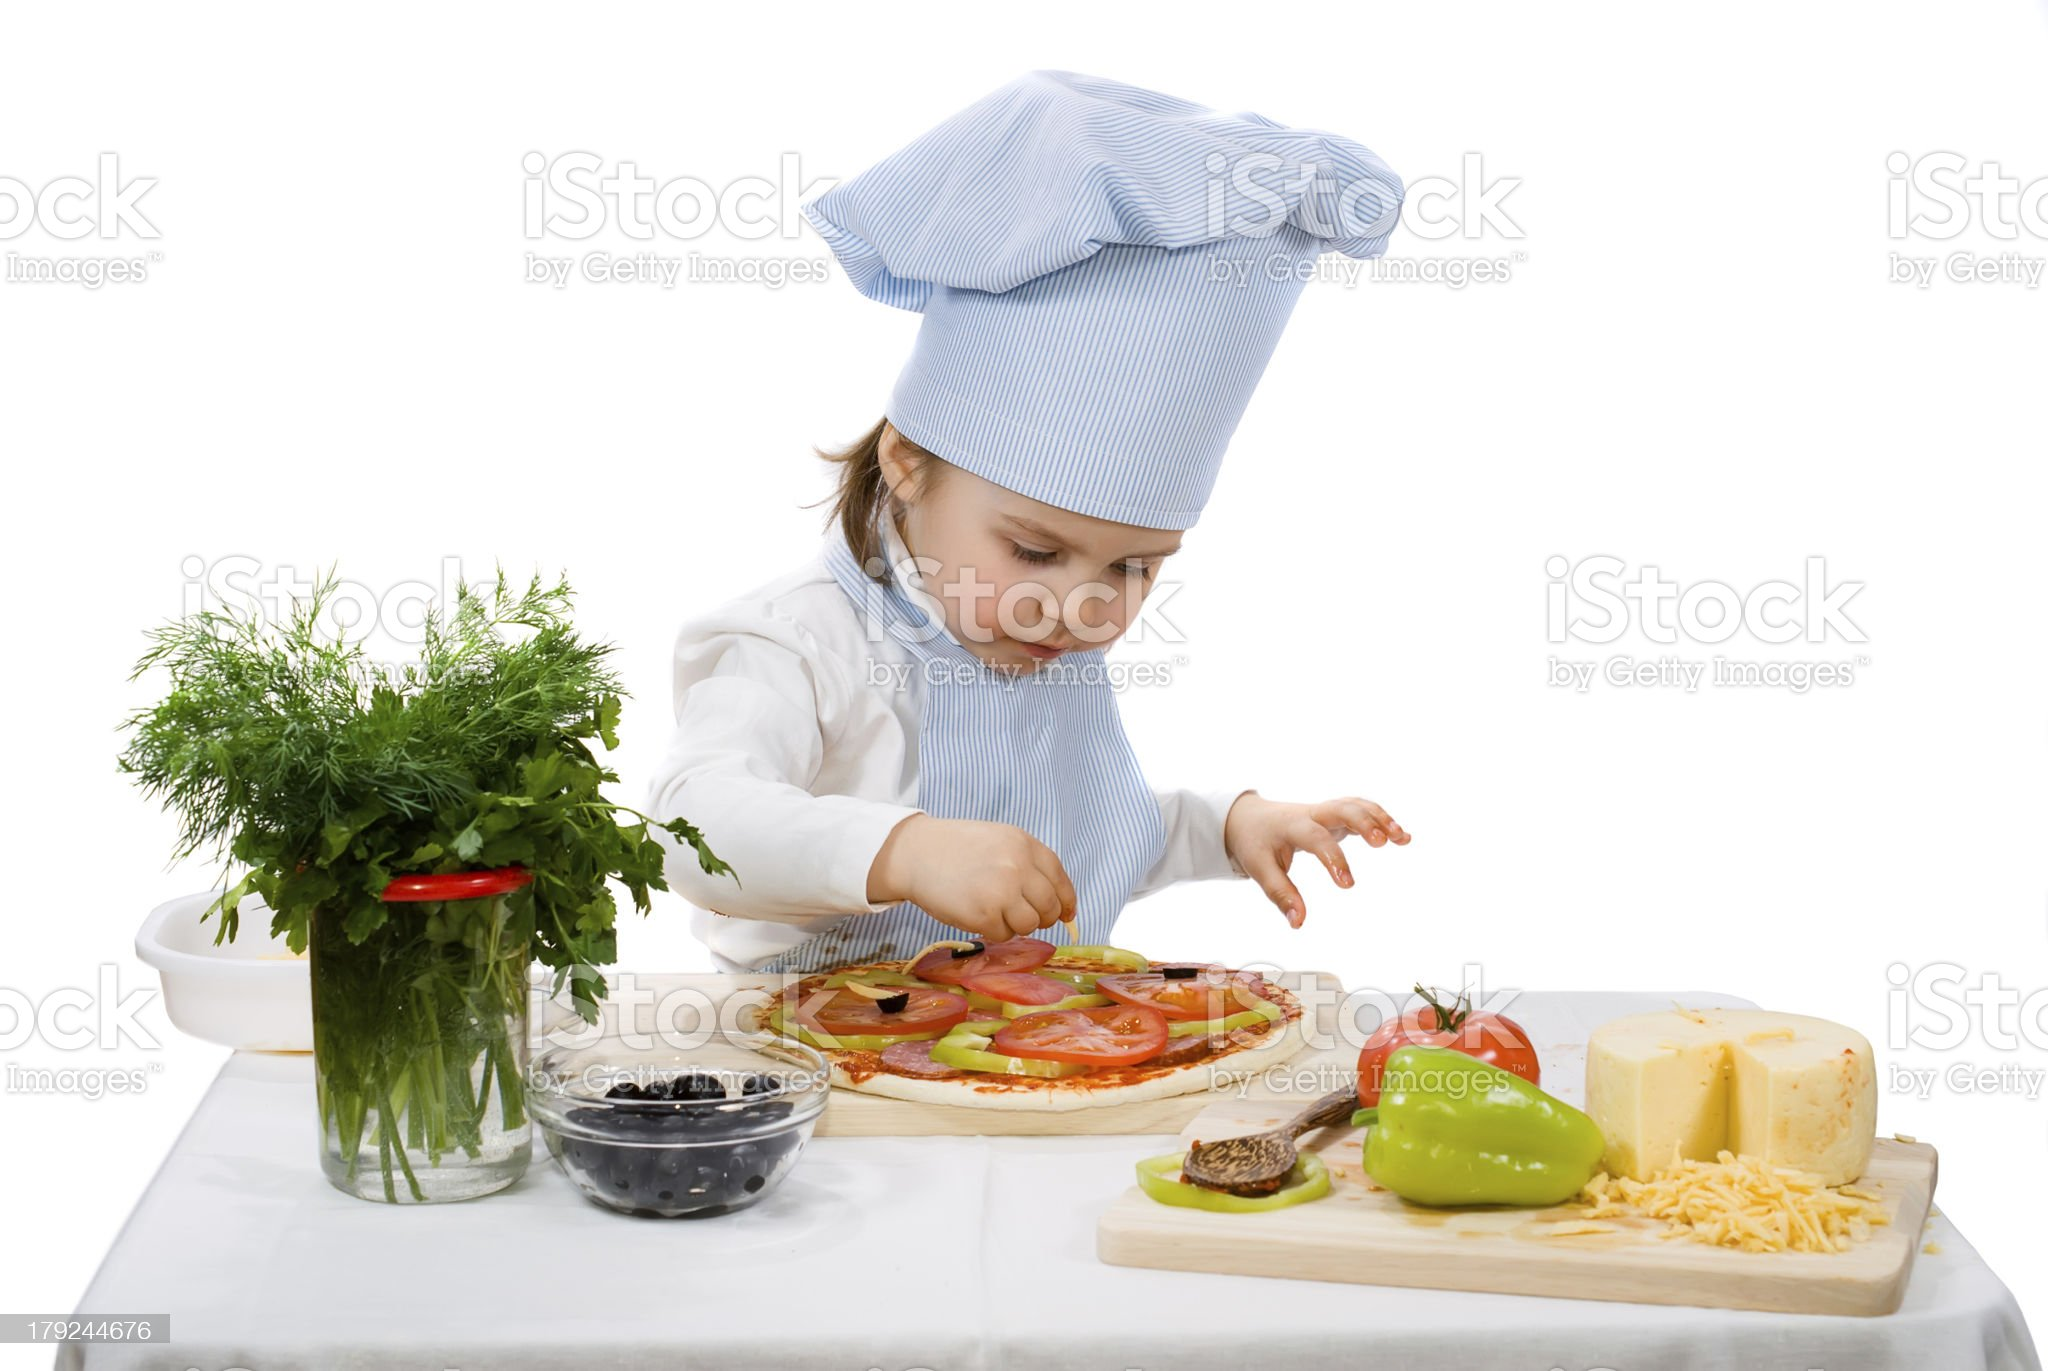 little girl preparing a pizza with cheese and vegetables royalty-free stock photo